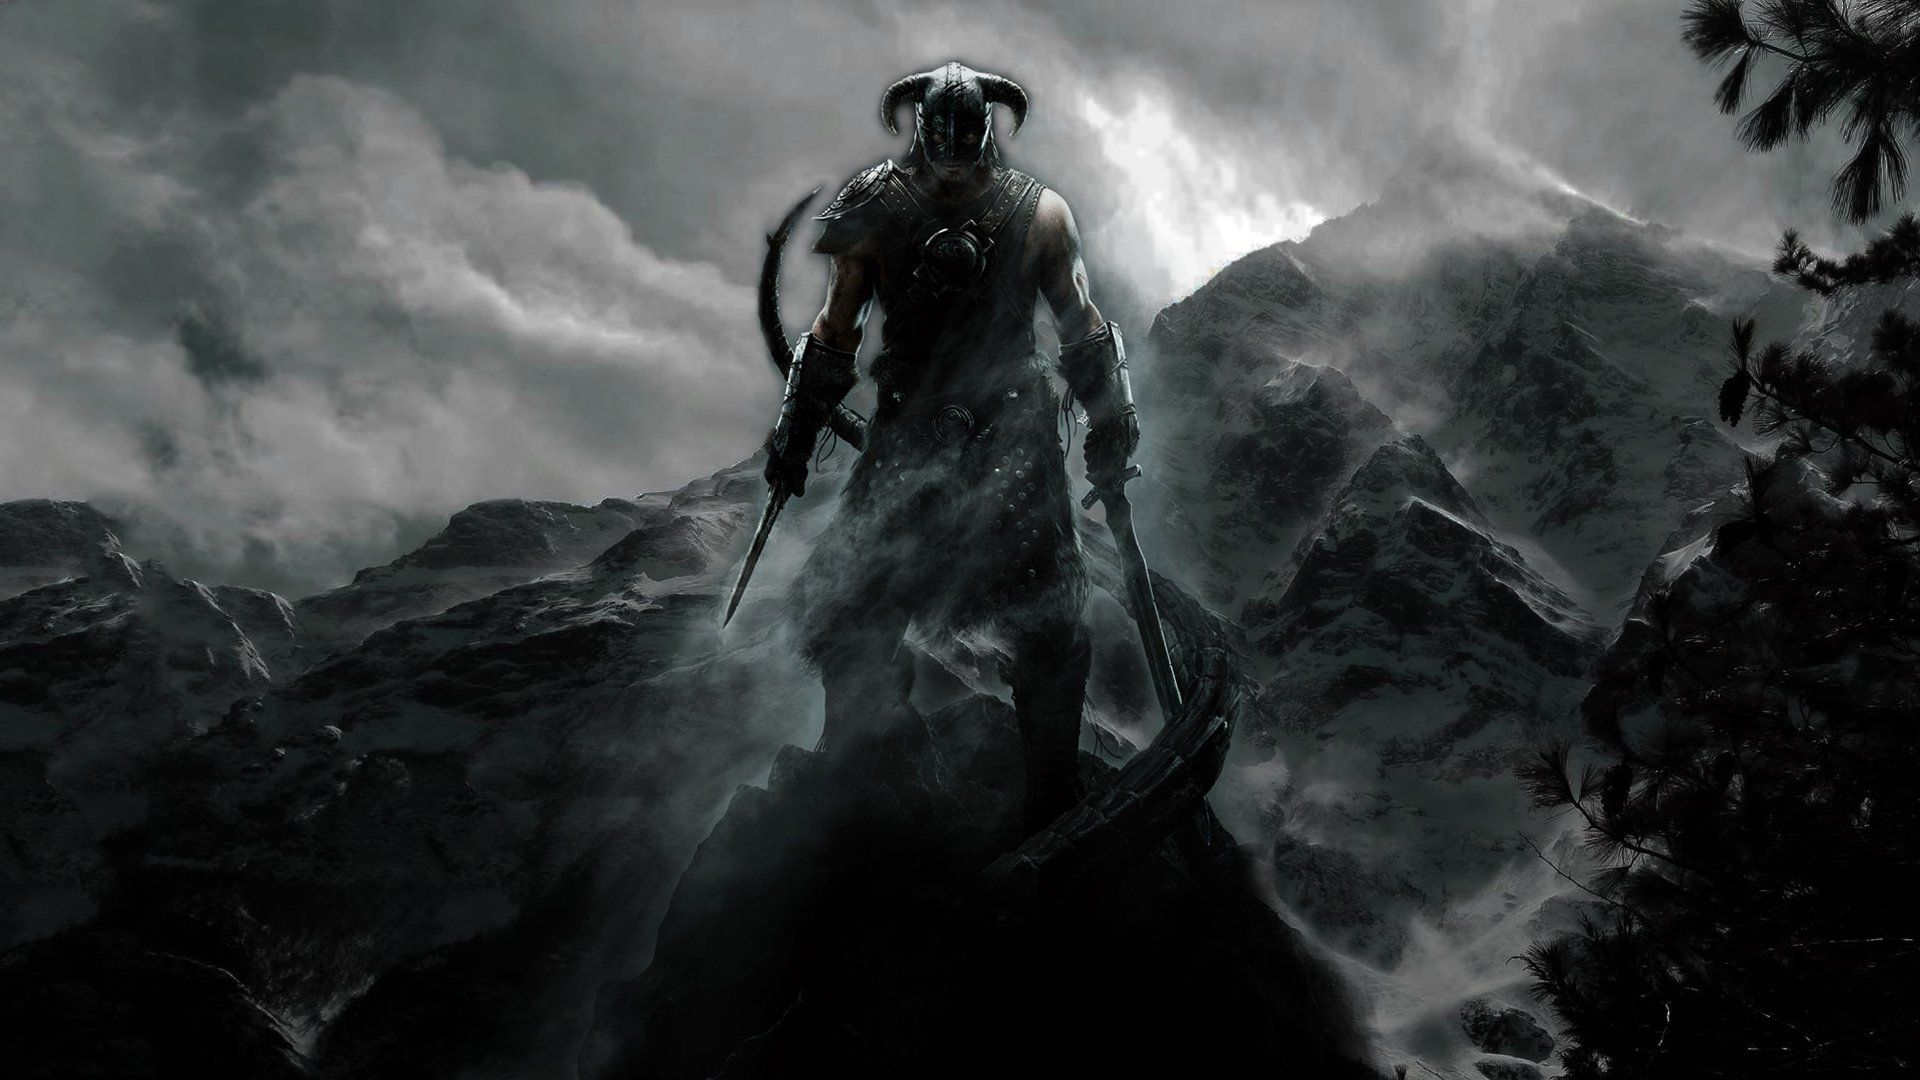 skyrim dragonborn mage desktop wallpapergrambocrackah on | hd